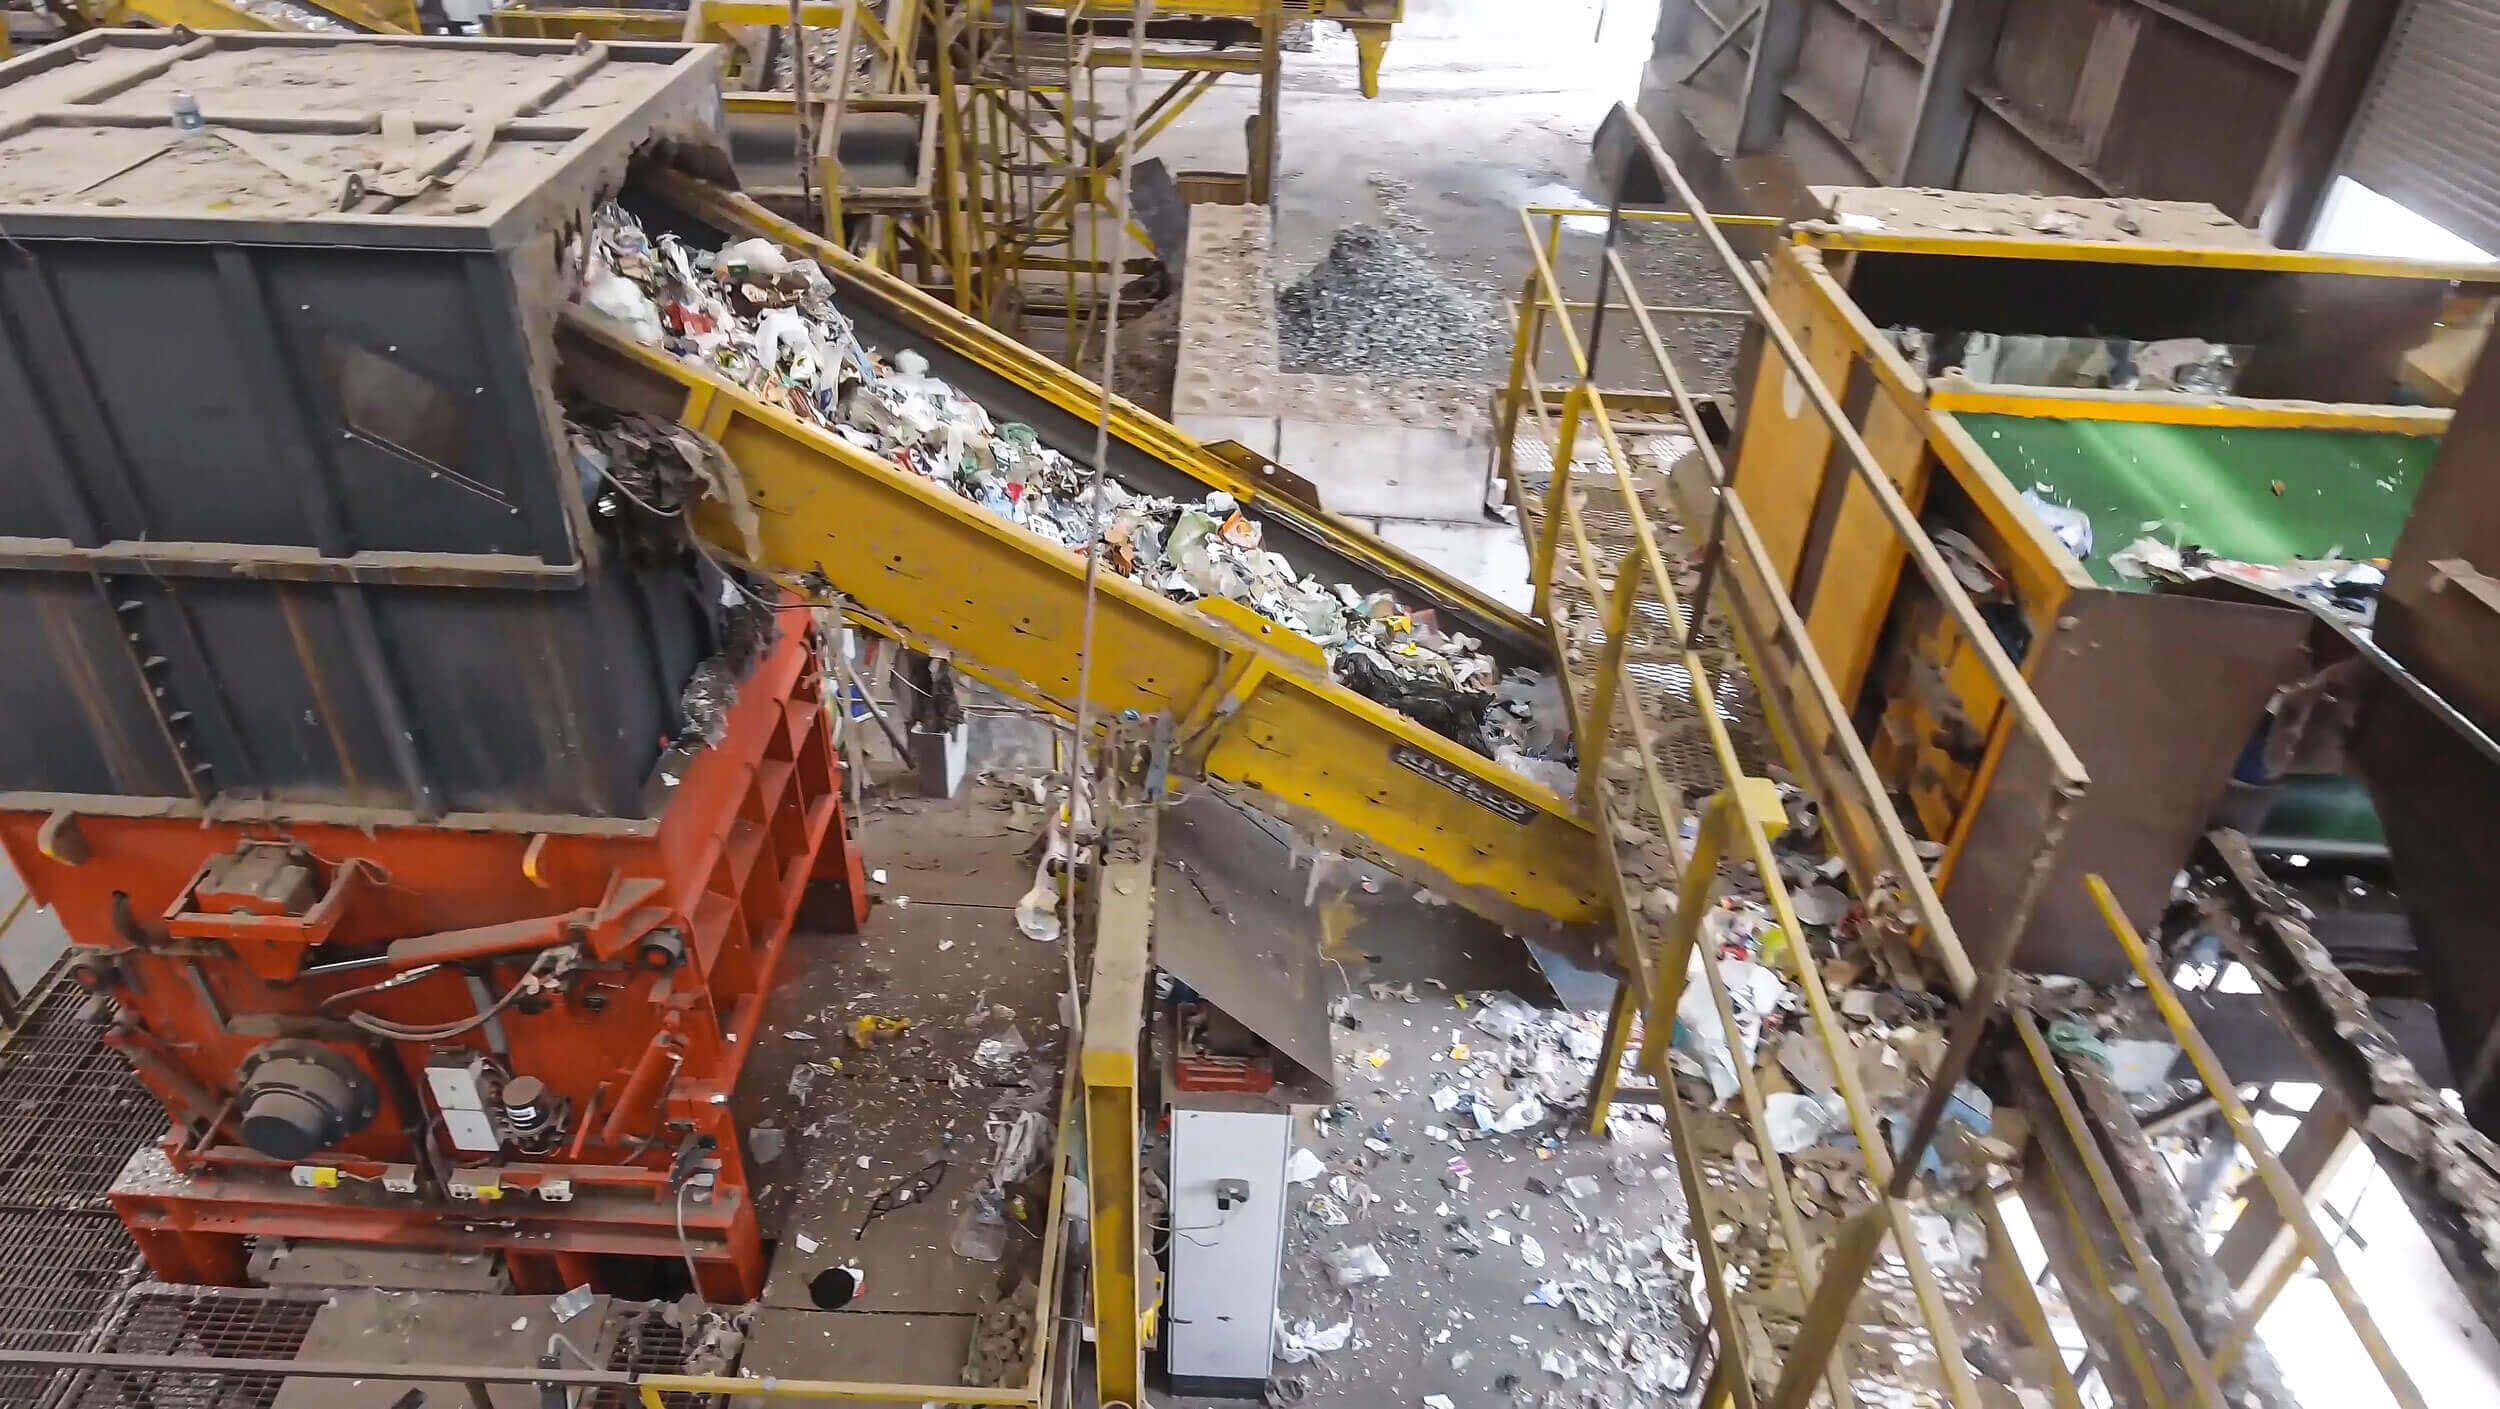 The WEIMA PowerLine 2000 shredder is fed by conveyor belt.